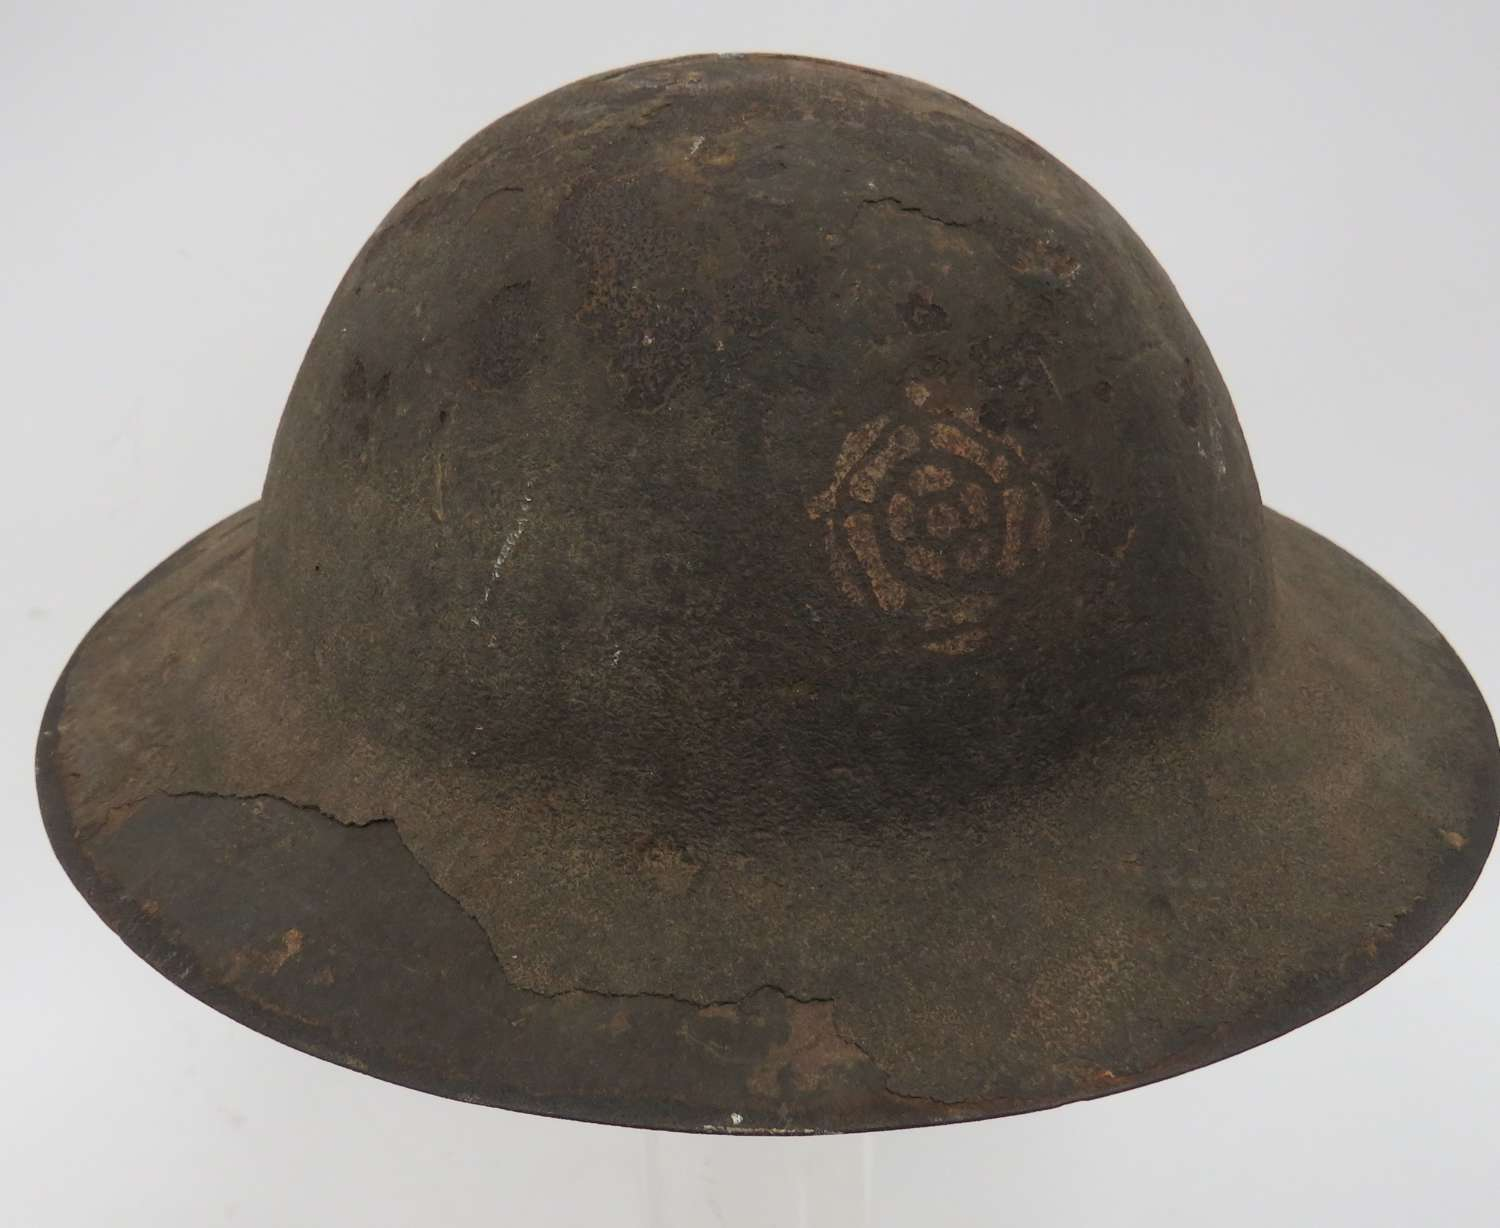 Rare WW1 49th (W.Riding) Divisional Formation Badged Helmet